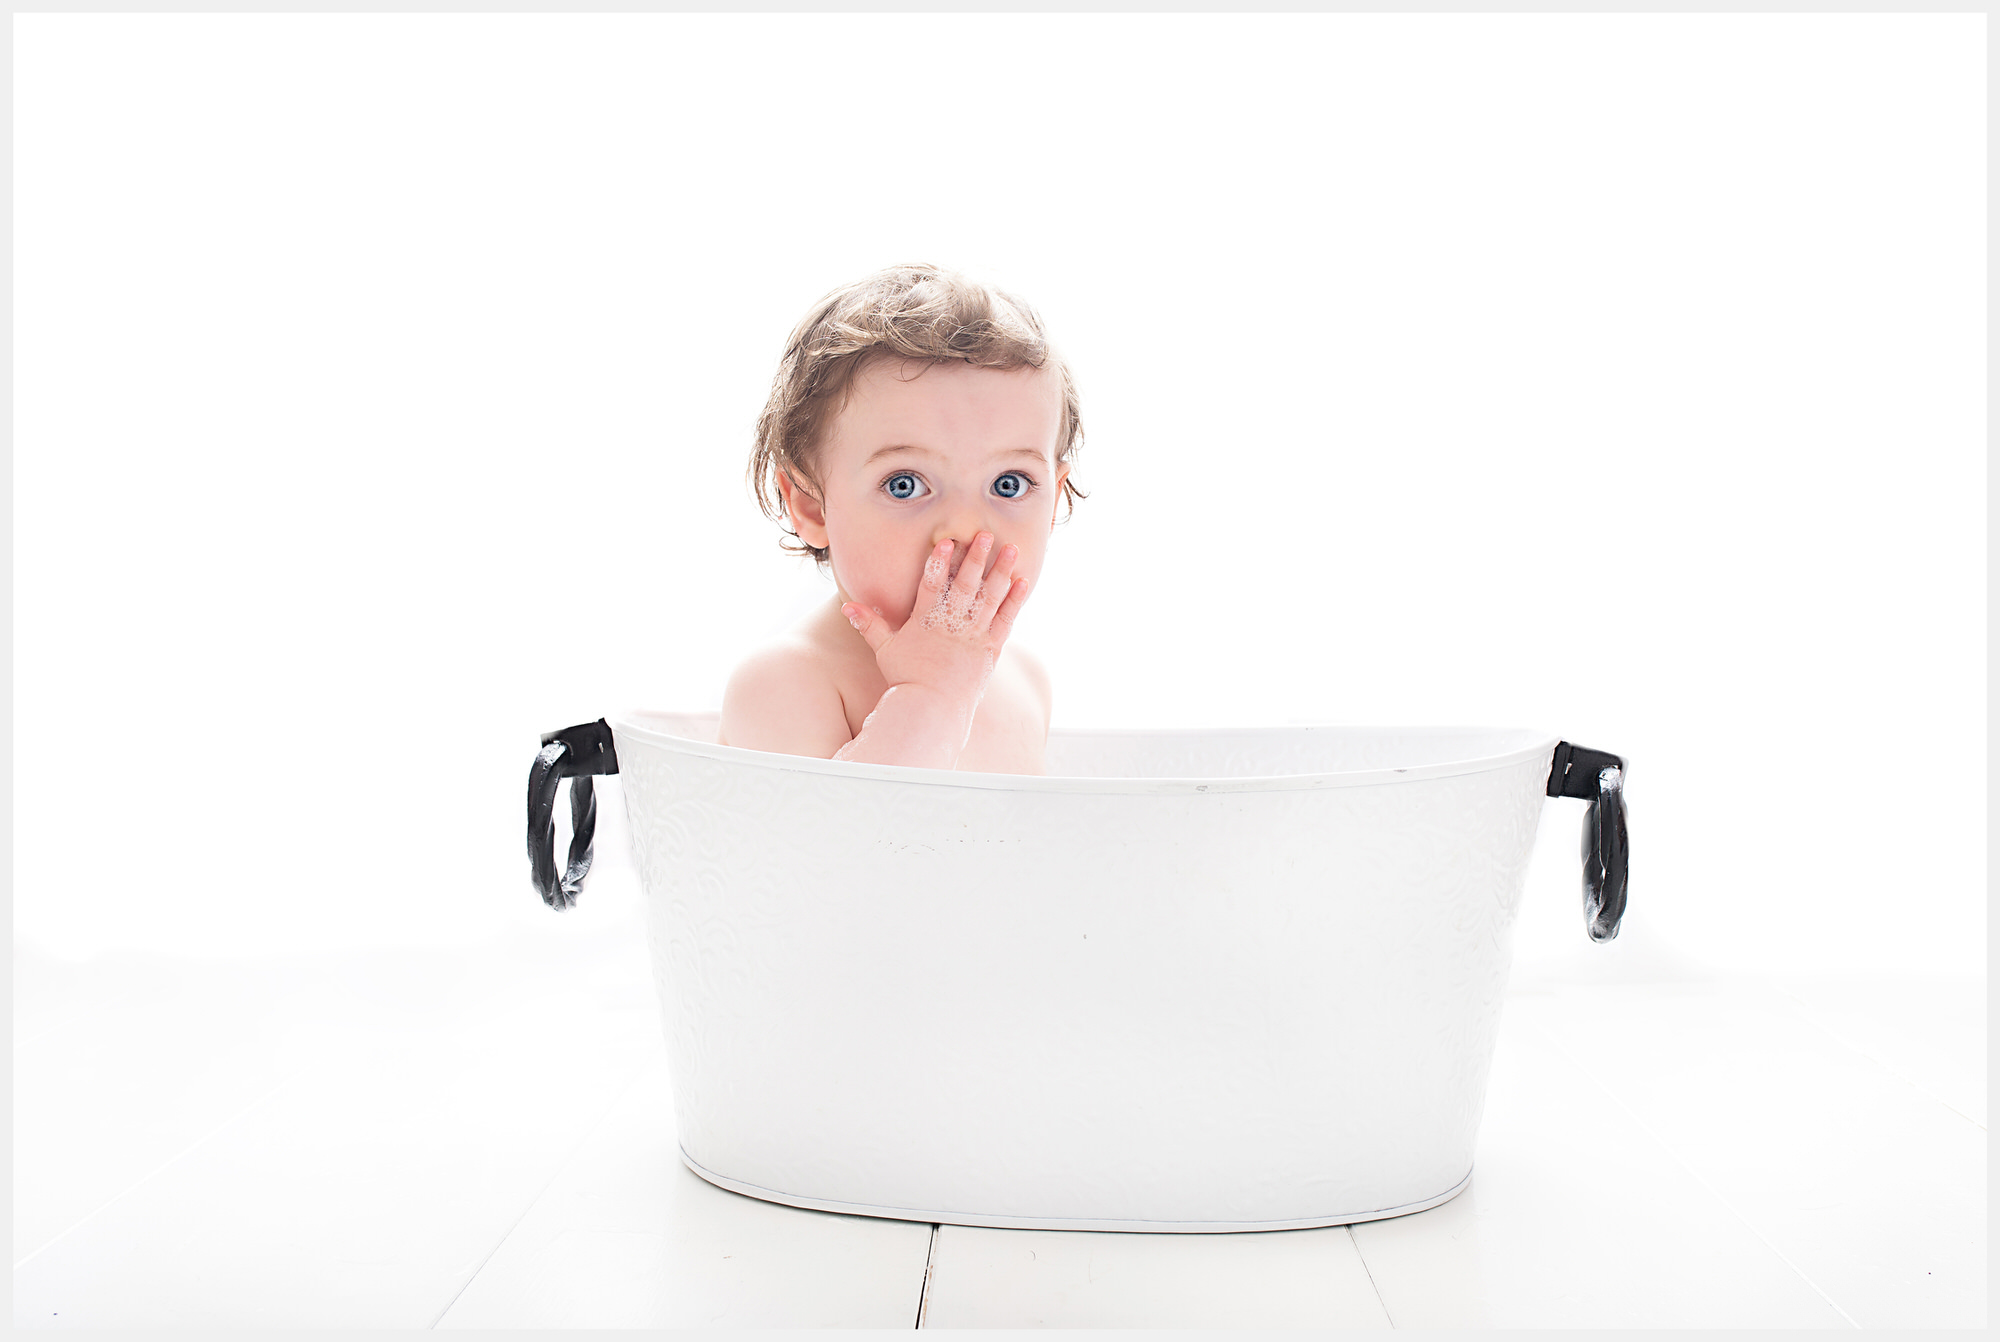 Barnsley cake smash and splash photographer, bath tub shoot